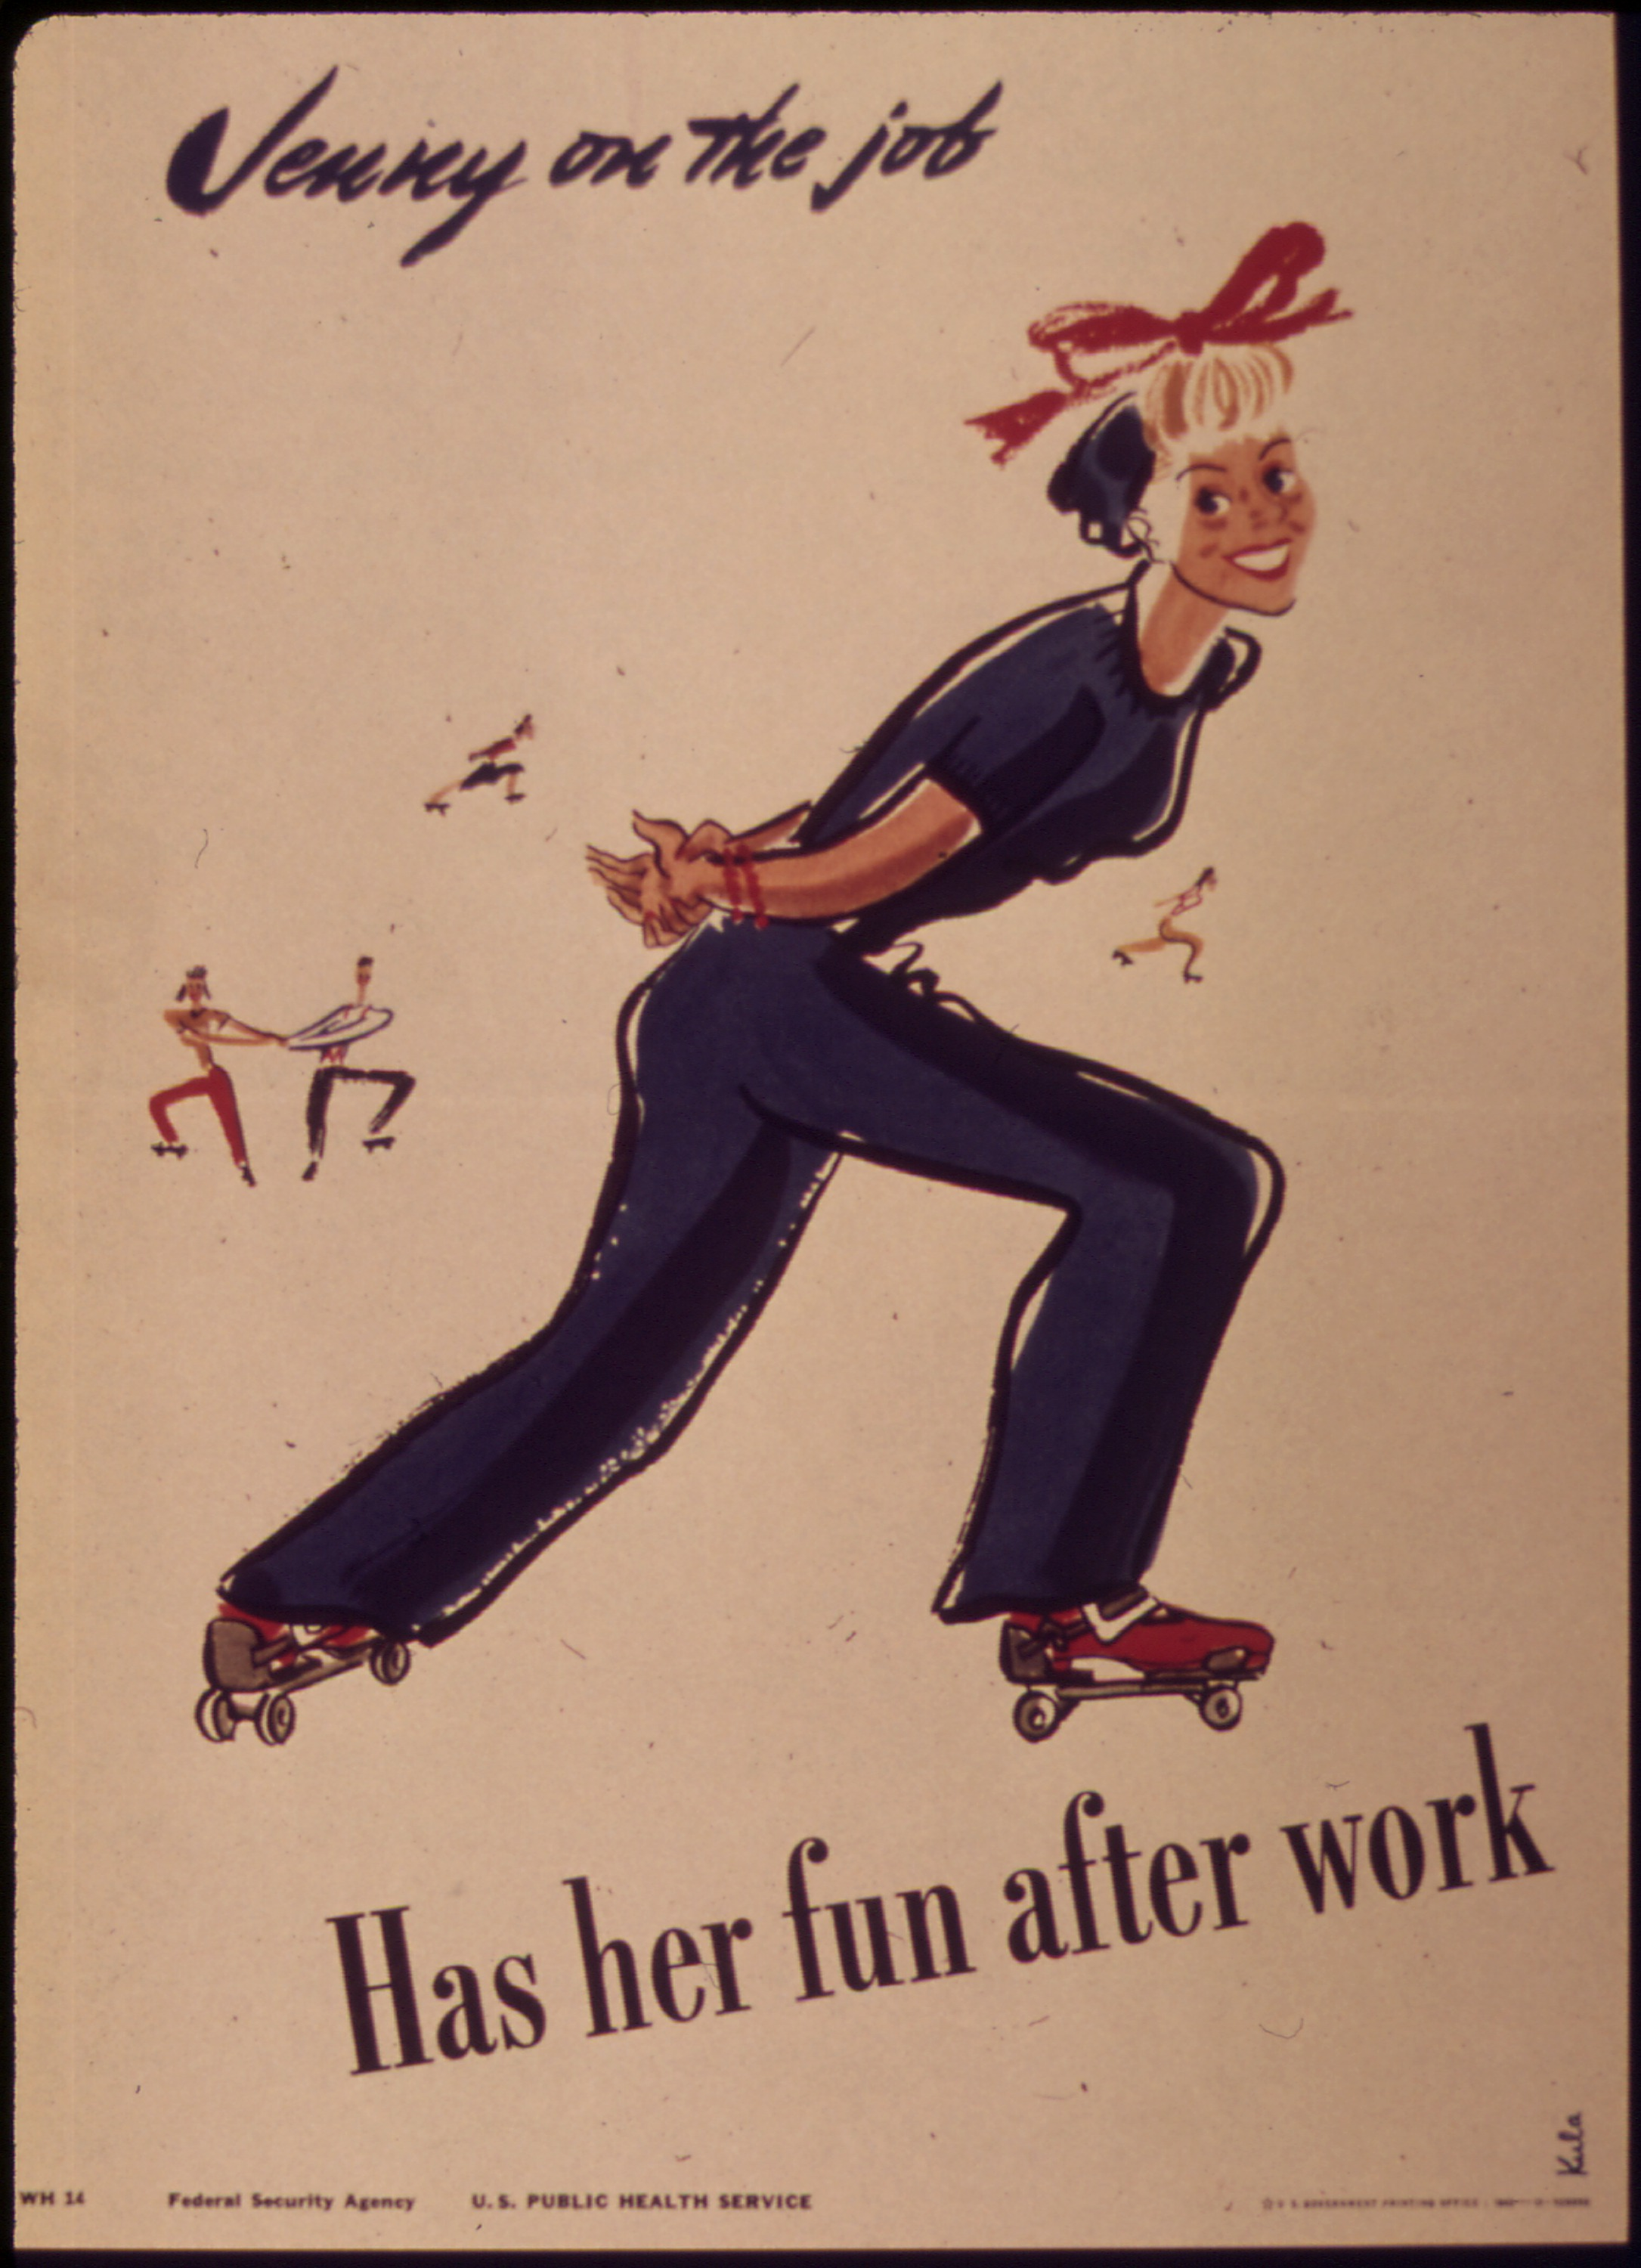 Vintage looking illustration of woman skating and the text: Jenny on the job. Has her fun after work.